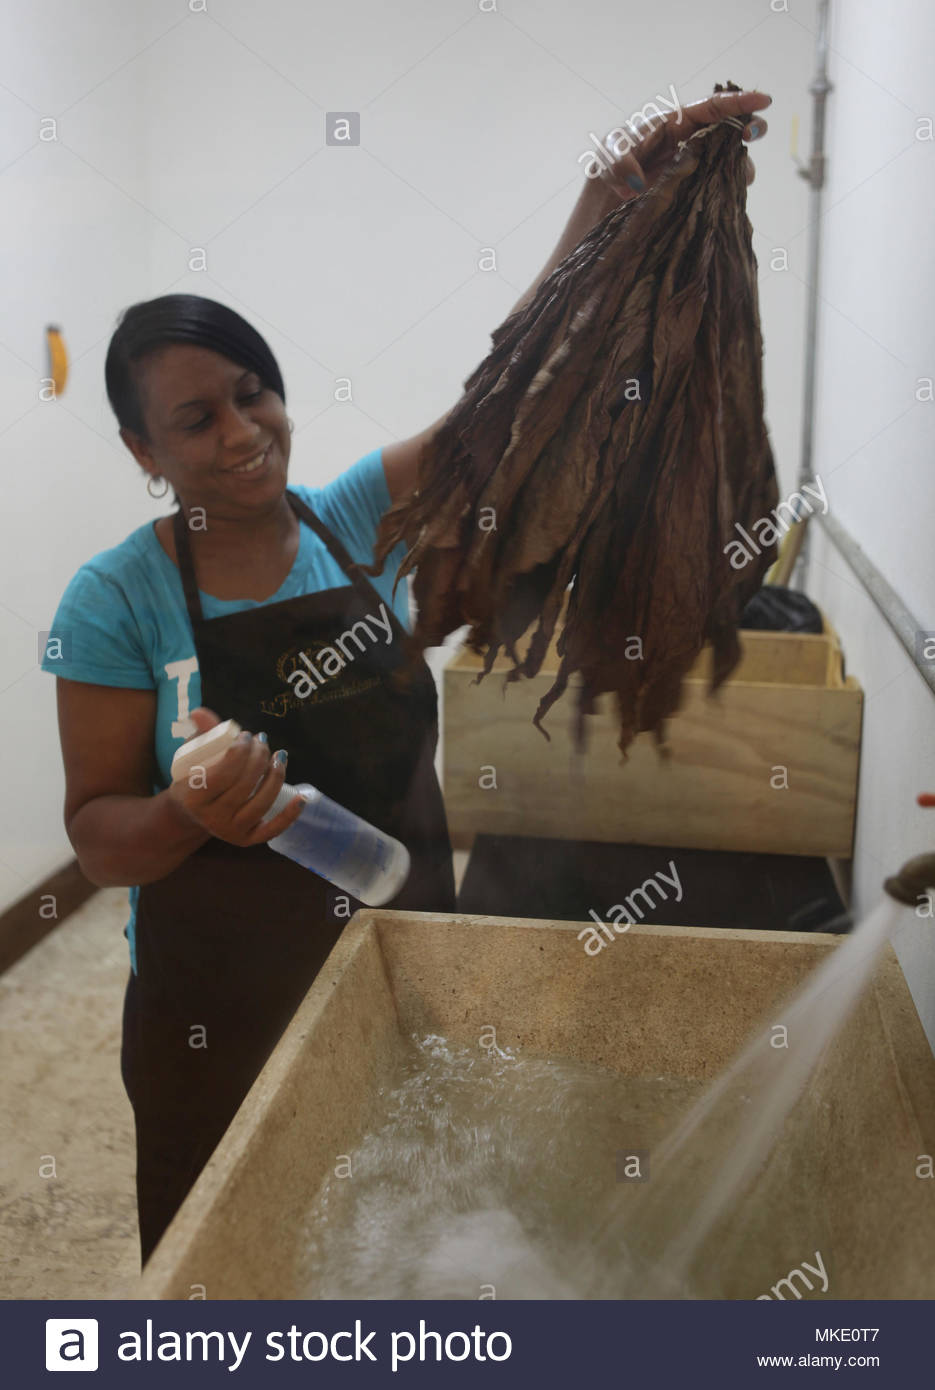 A worker moistens and washes dried tobacco leaves at the LaFlor Dominicana Cigar Factory in the Dominican Republic. - Stock Image